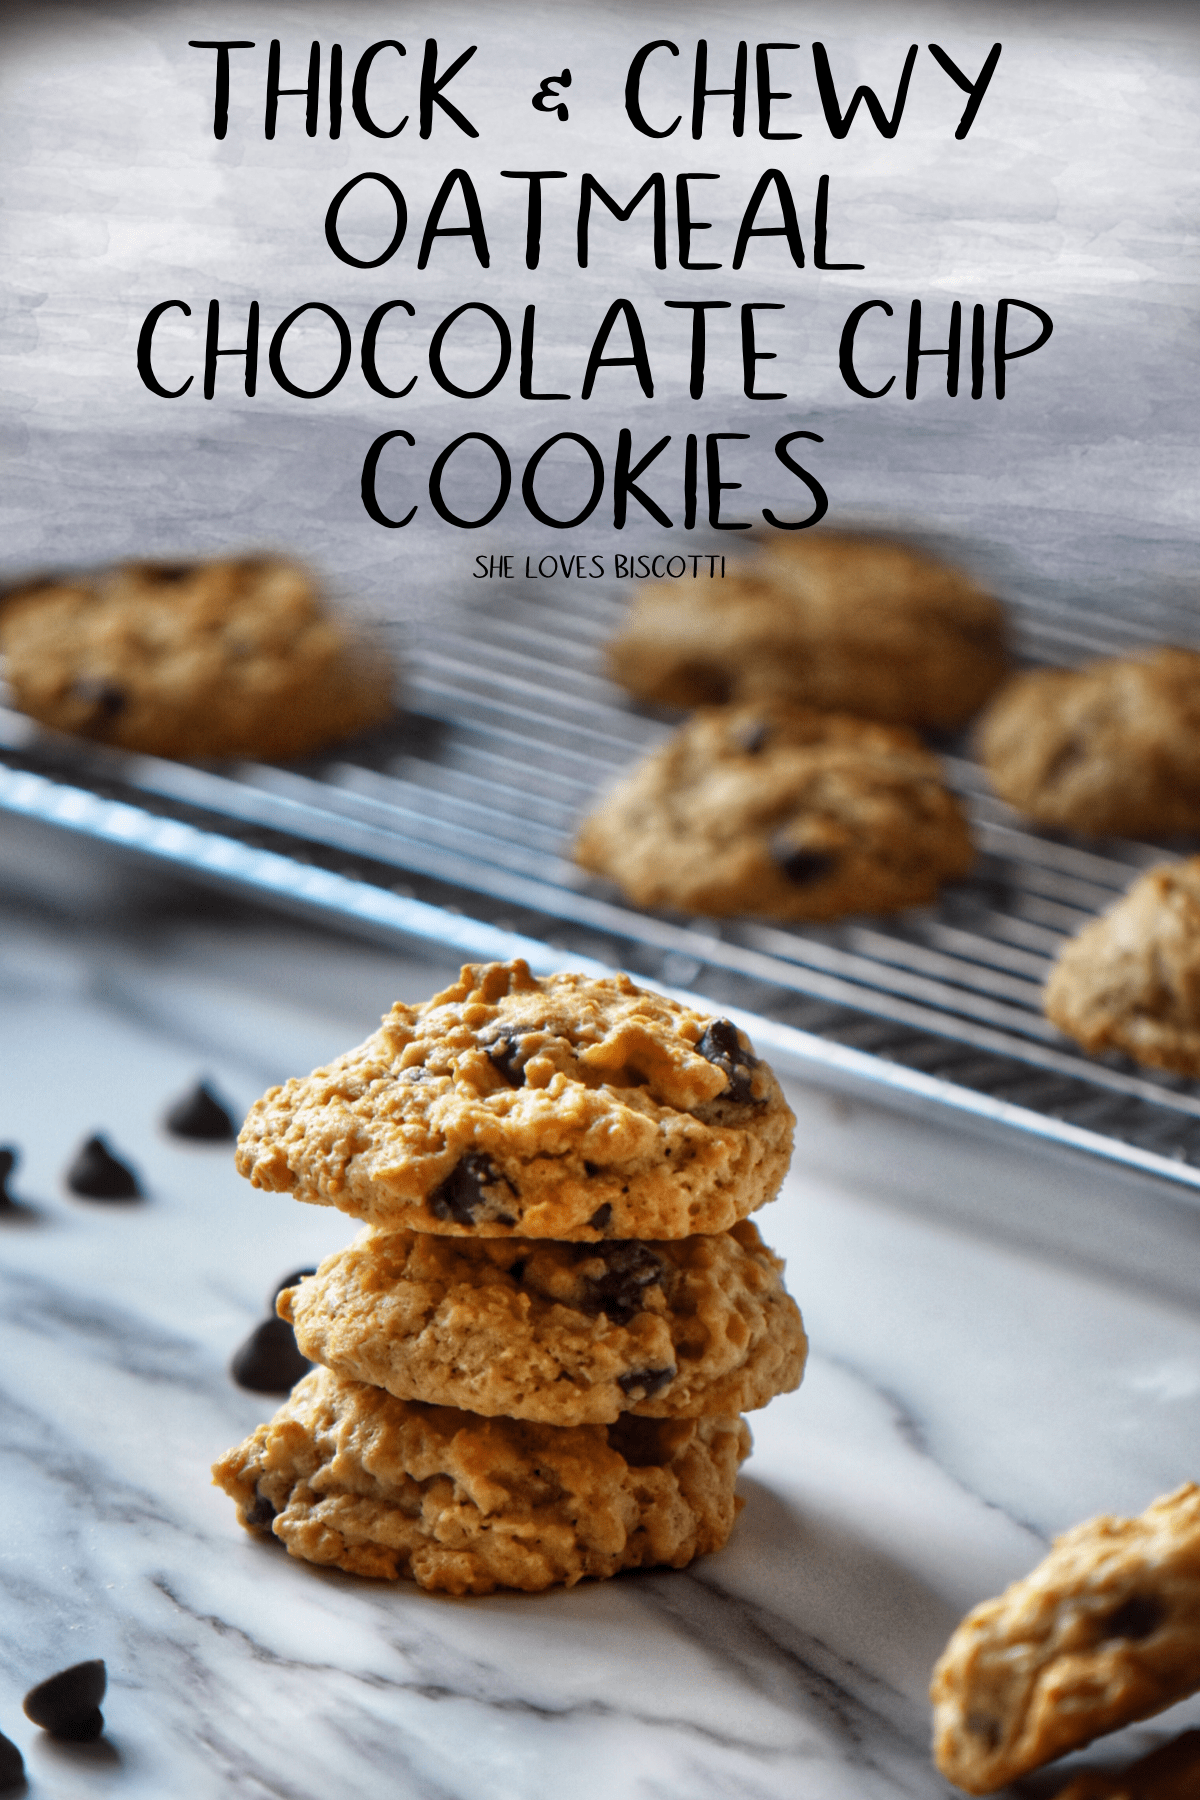 Thick and Chewy Oatmeal Chocolate Chip cookies aka the only chocolate chip cookie you will ever need!#shelovesbiscotti #oatmeal #oatmealchocolatechipcookies #oats #oatmealcookies #nomnomnom #oatmealcookies #easybaking #quickoats